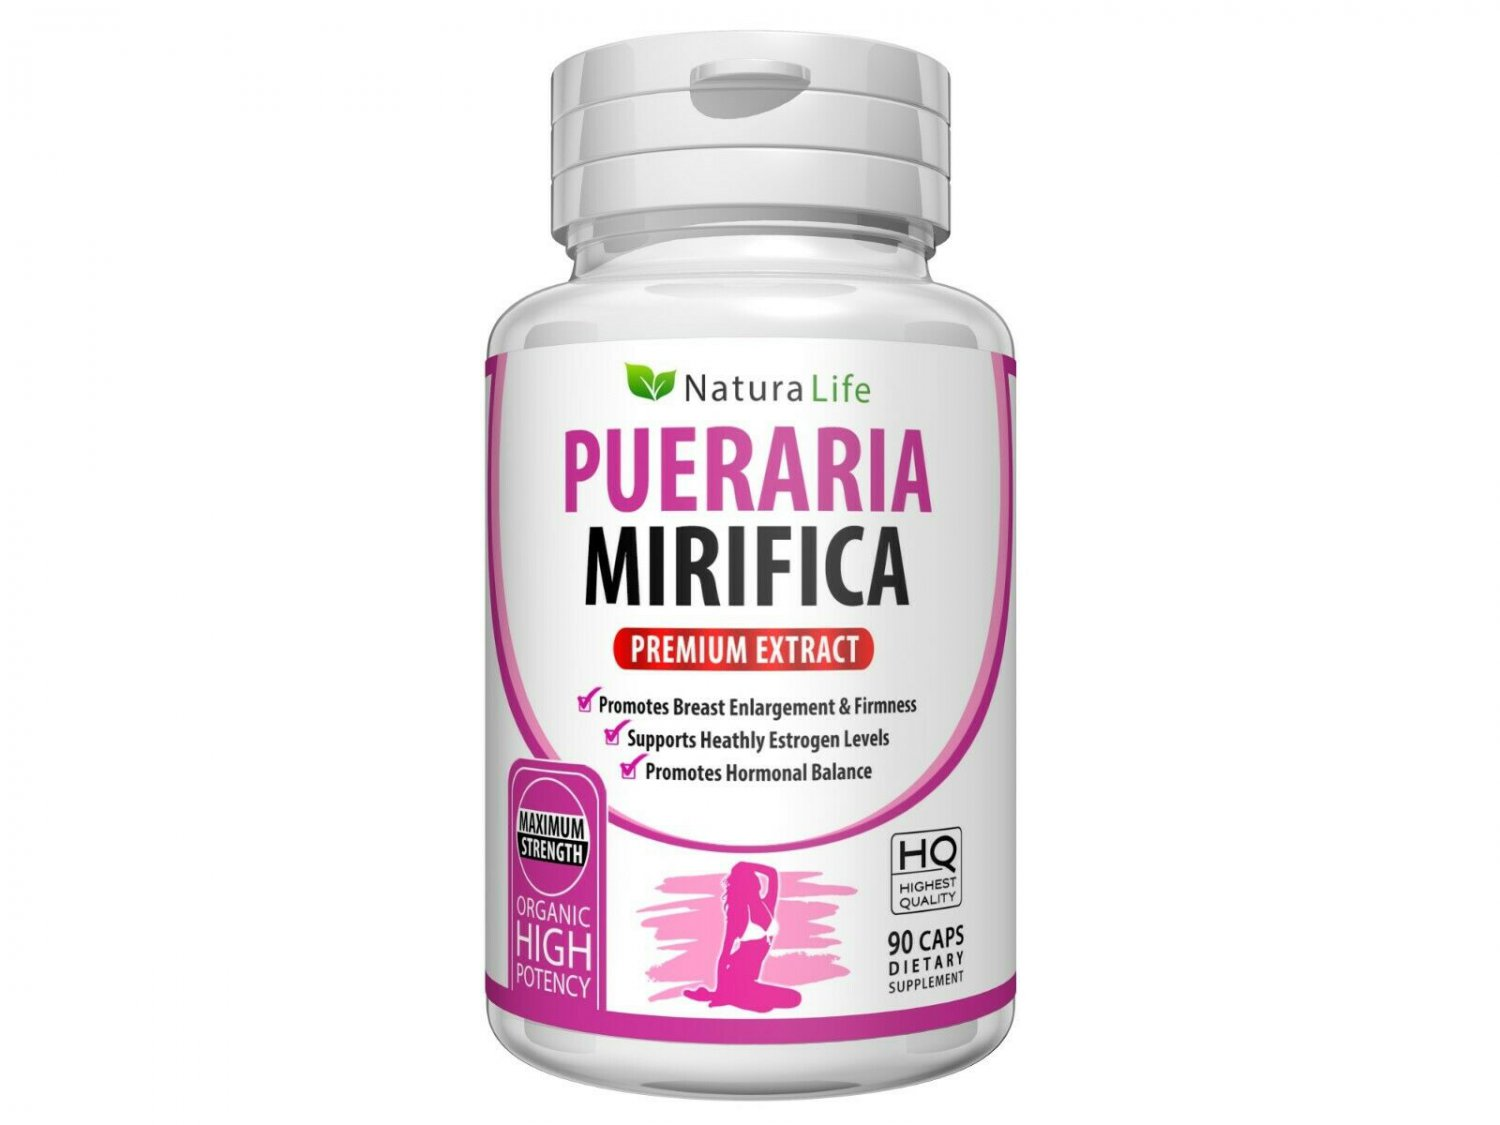 PURE PUERARIA MIRIFICA PILLS 5000mg Extract BUST BREAST ENLARGEMENT 90 CAPSULES